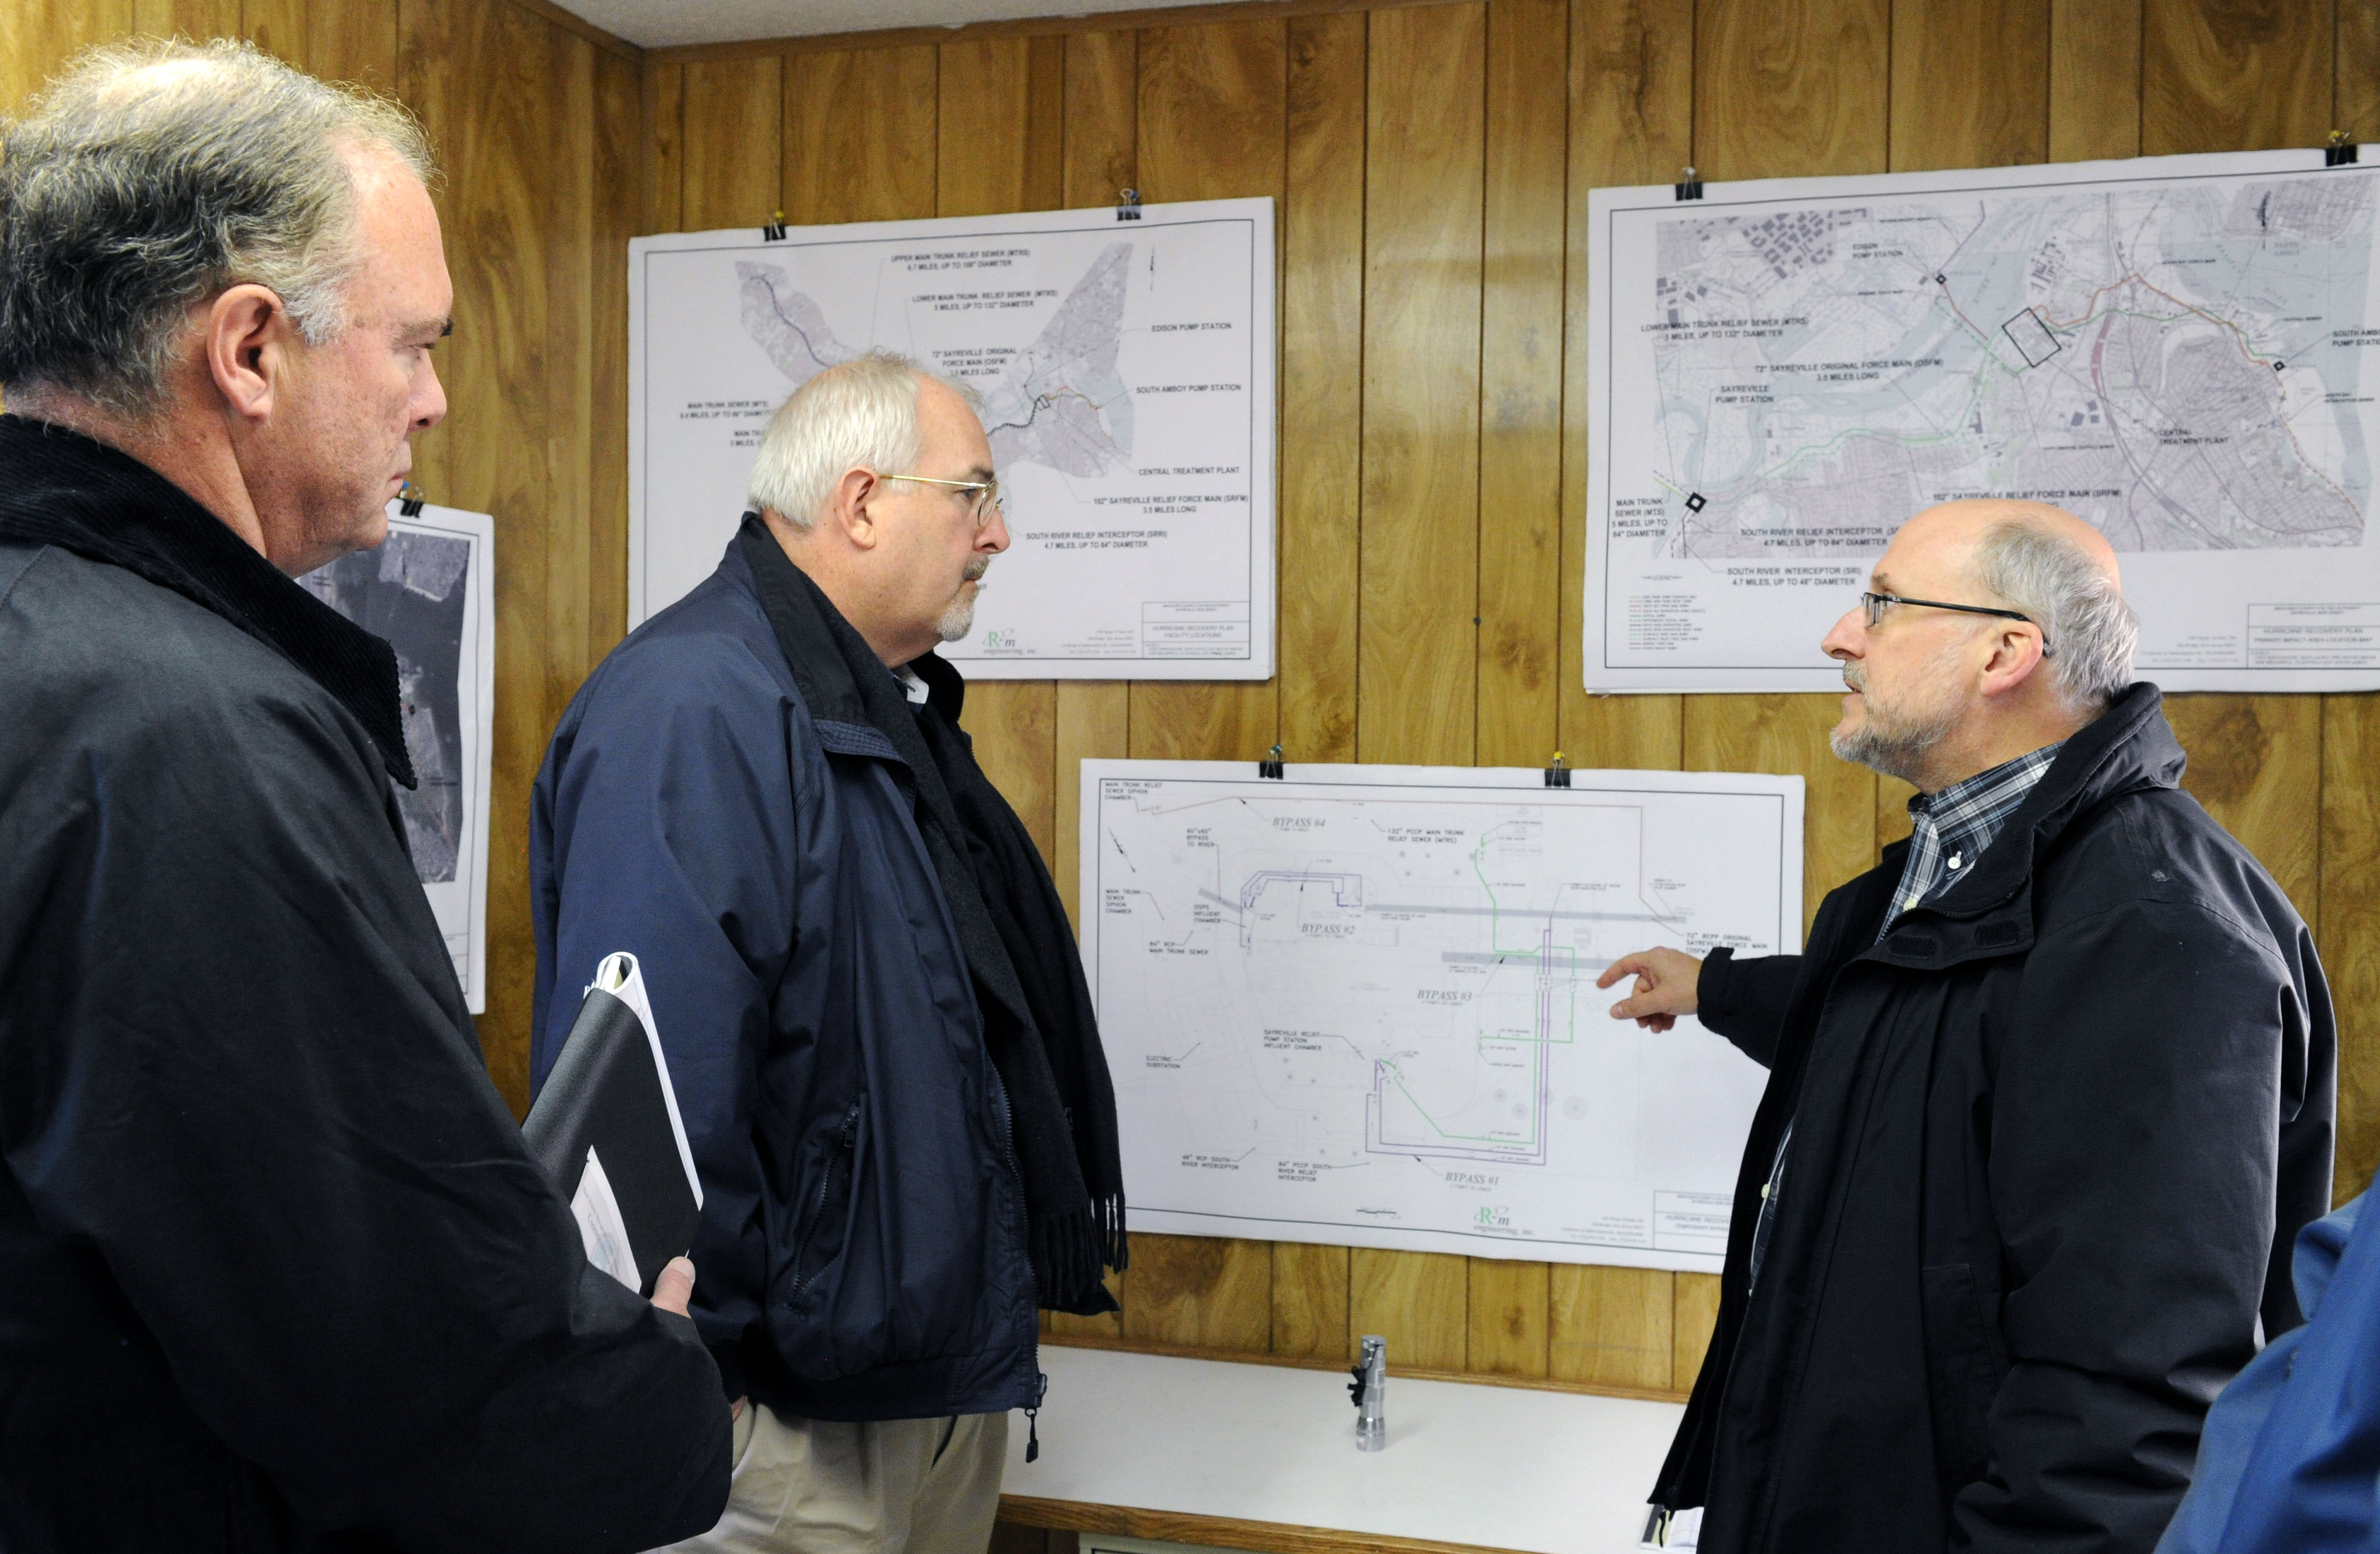 Sayerville, N.J., Nov. 28, 2012 -- FEMA Administrator Craig Fugate, center, and Commissioner of NJ Environmental Protection Bob Martin, get a briefing on the local Water Pumping Station that was impacted during Hurricane Sandy, by Water and Wastewater Engineer Michael Samuel. The station was underwater during the storm. Jocelyn Augustino/FEMA